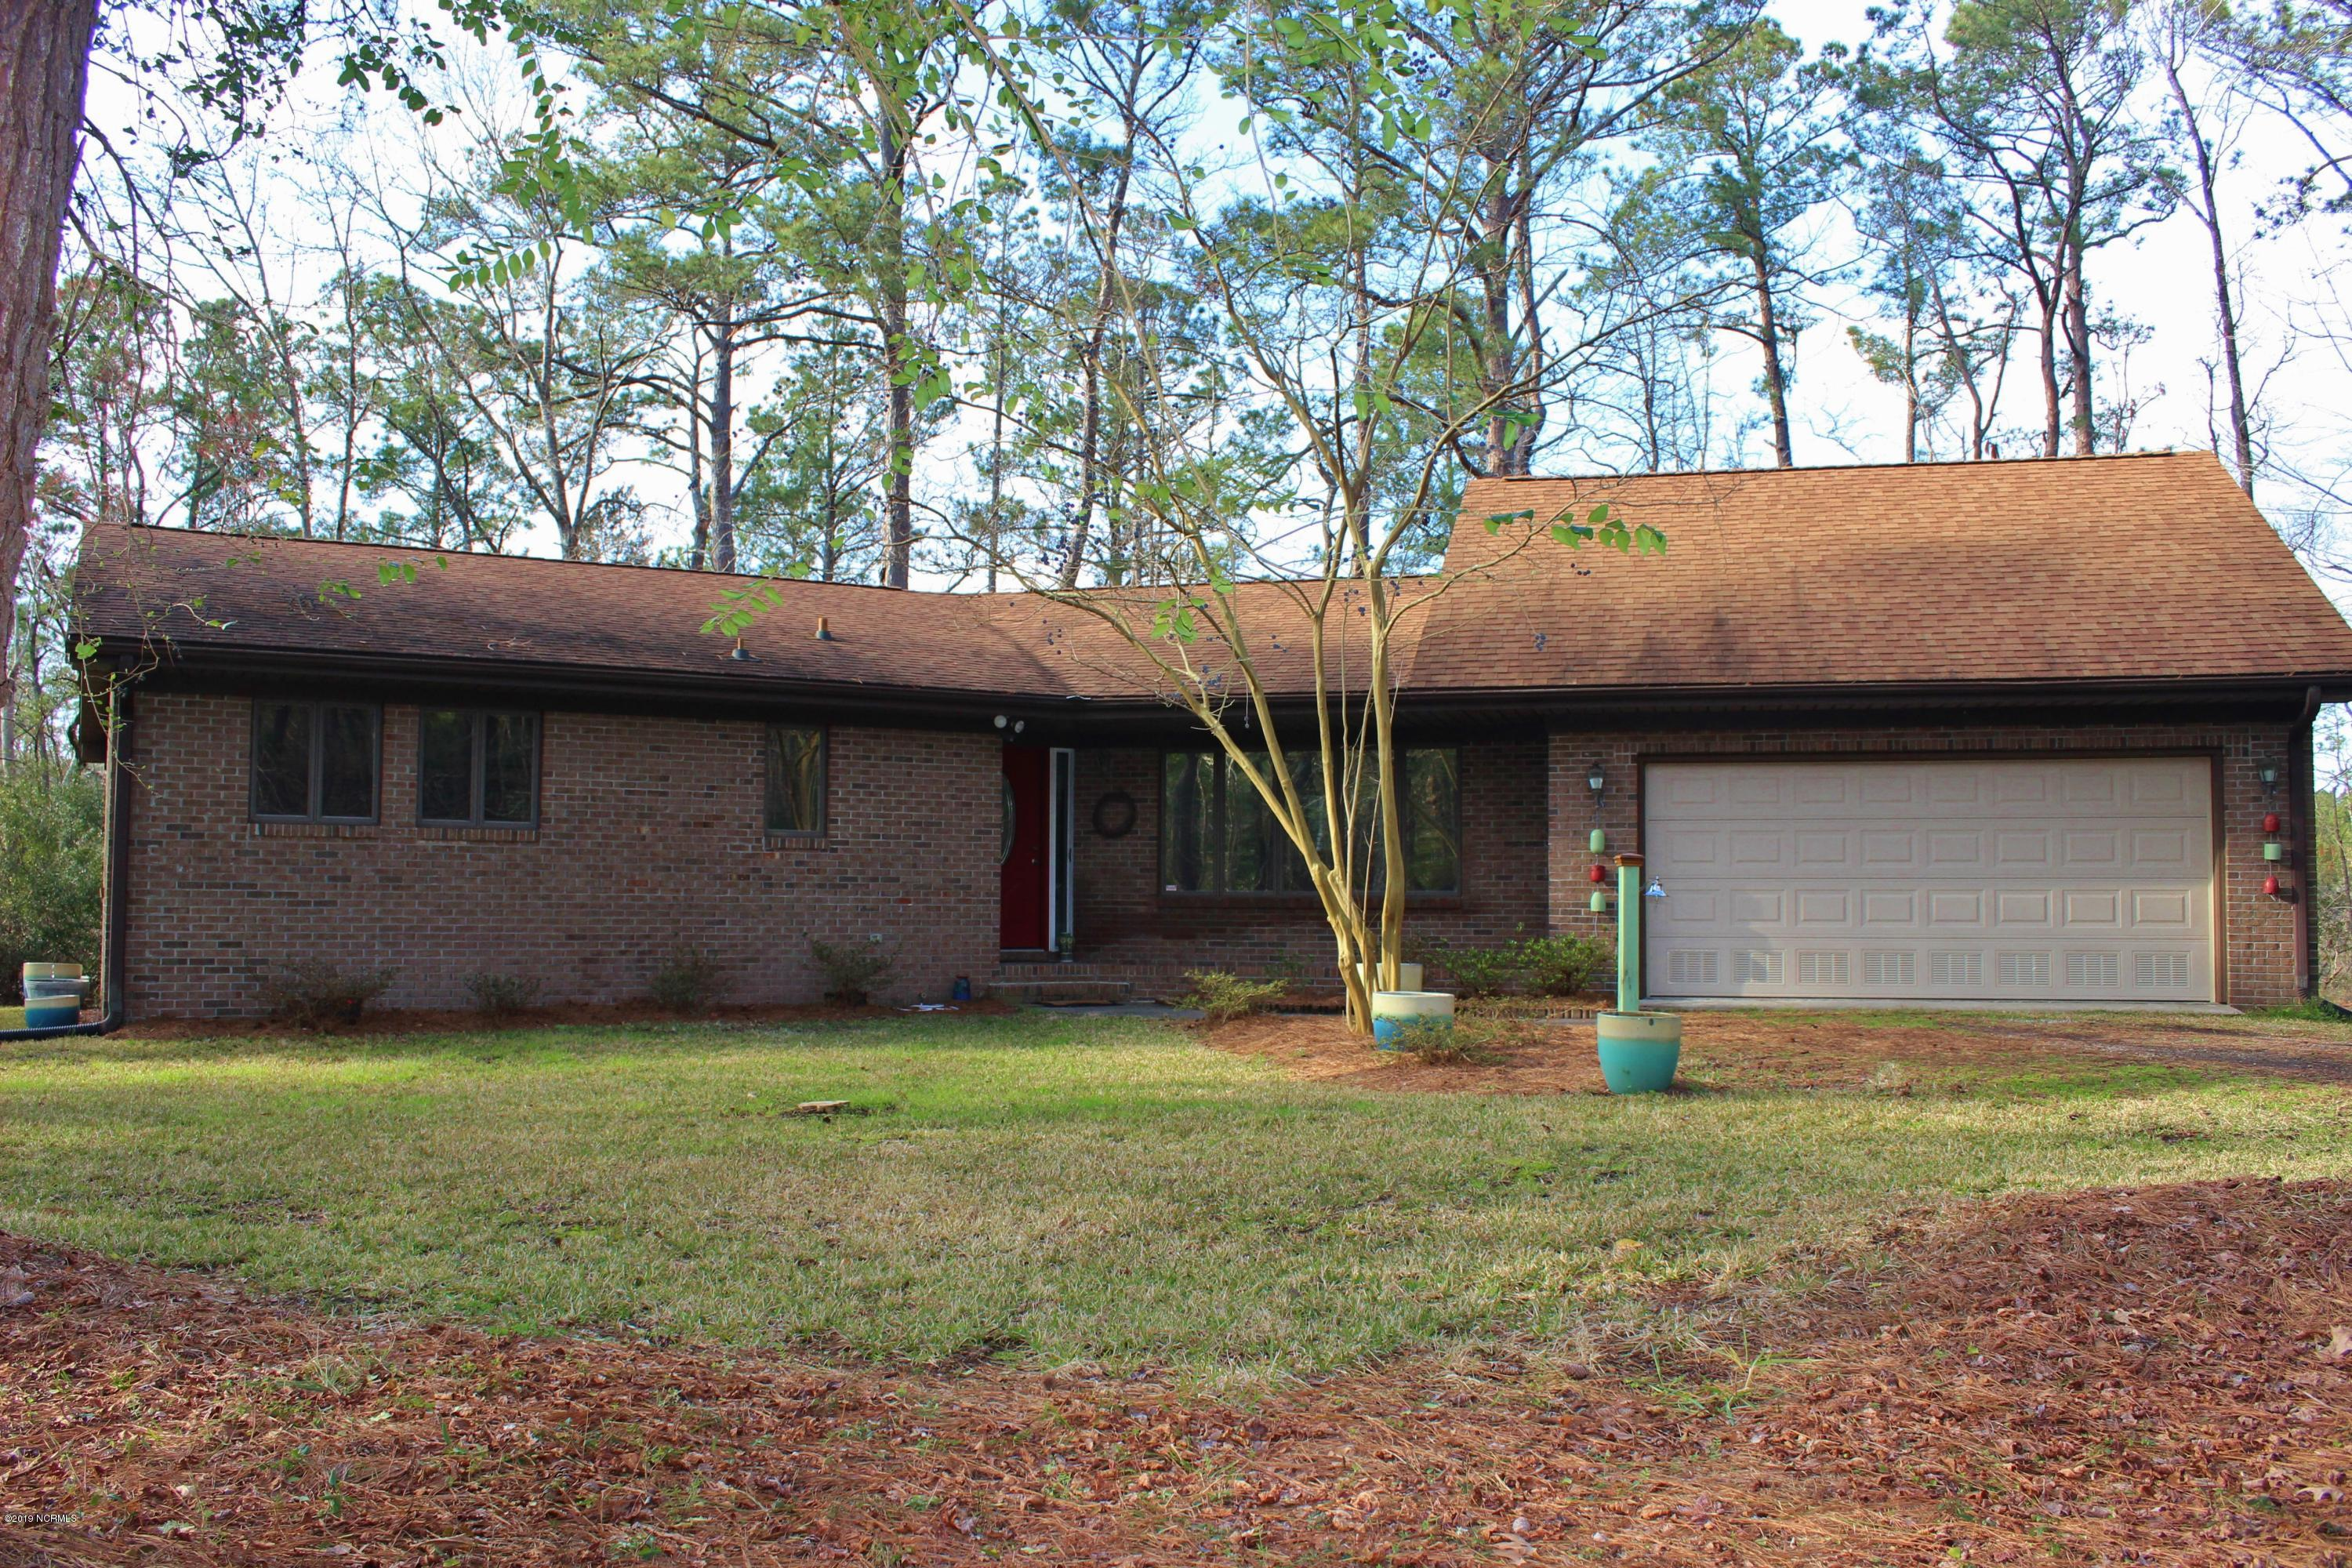 6003 Falcon Drive, Oriental, North Carolina, 3 Bedrooms Bedrooms, 8 Rooms Rooms,2 BathroomsBathrooms,Single family residence,For sale,Falcon,100153615